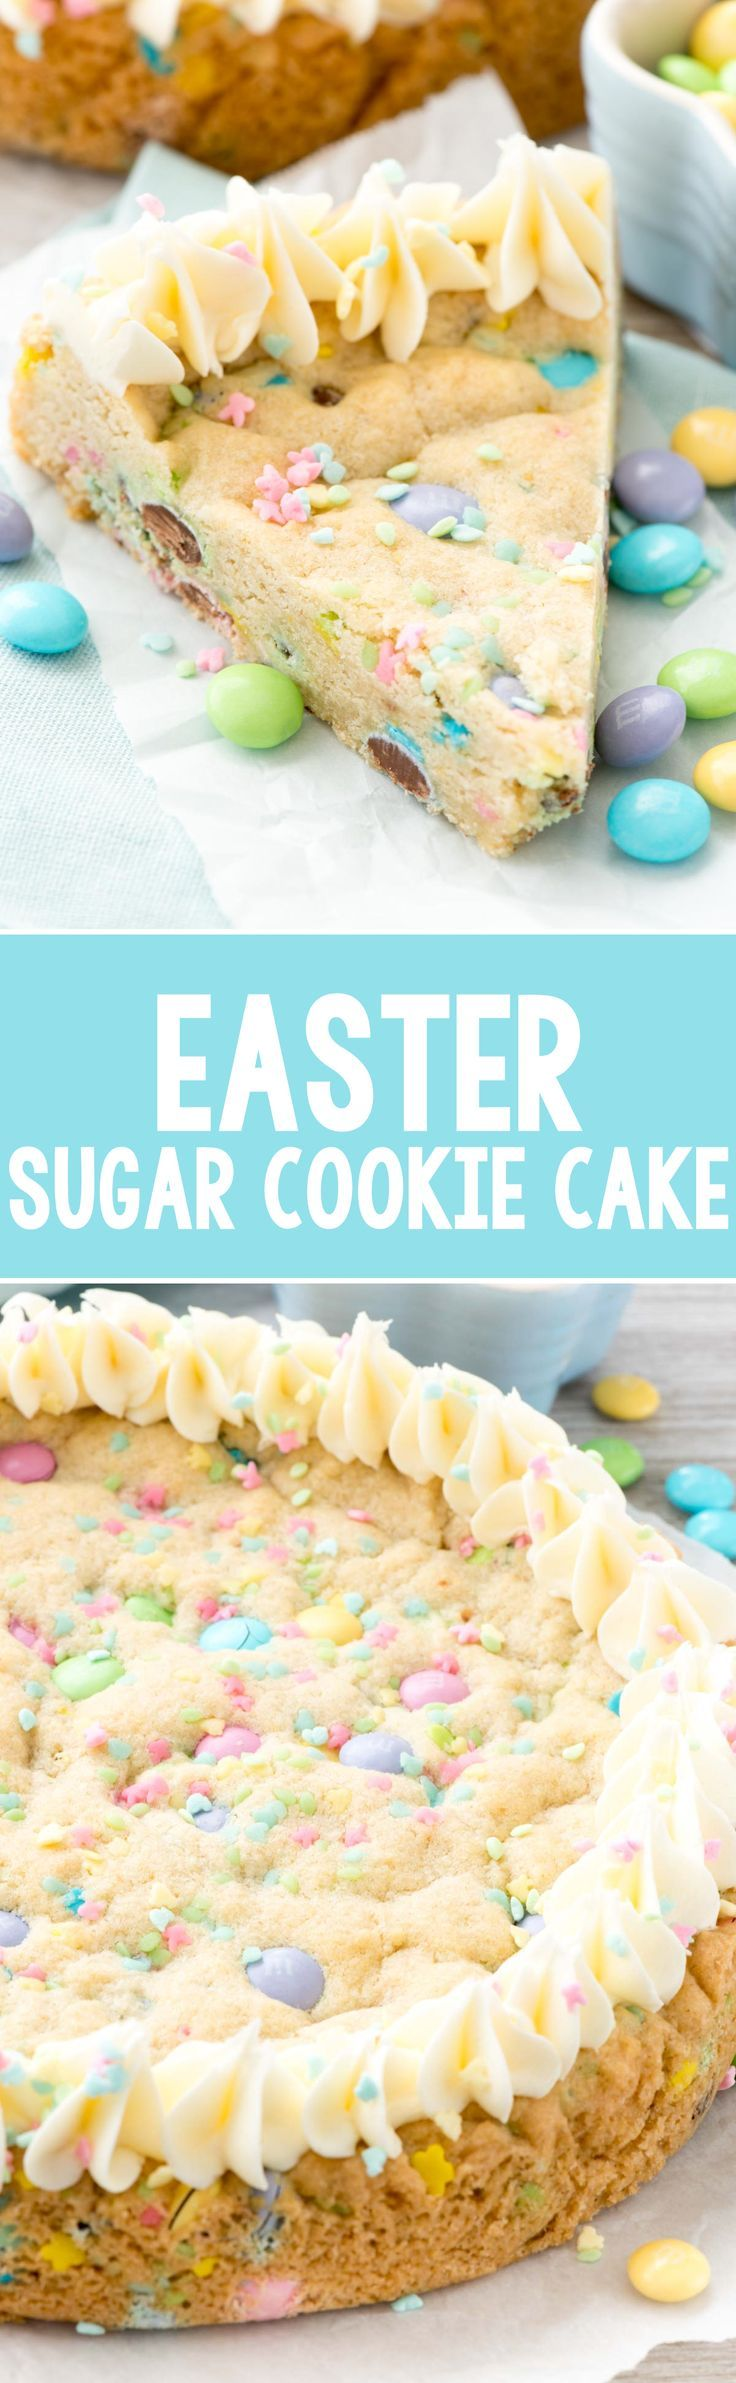 Slow Cooker: Easter Sugar Cookie Cake - Crazy for Crust